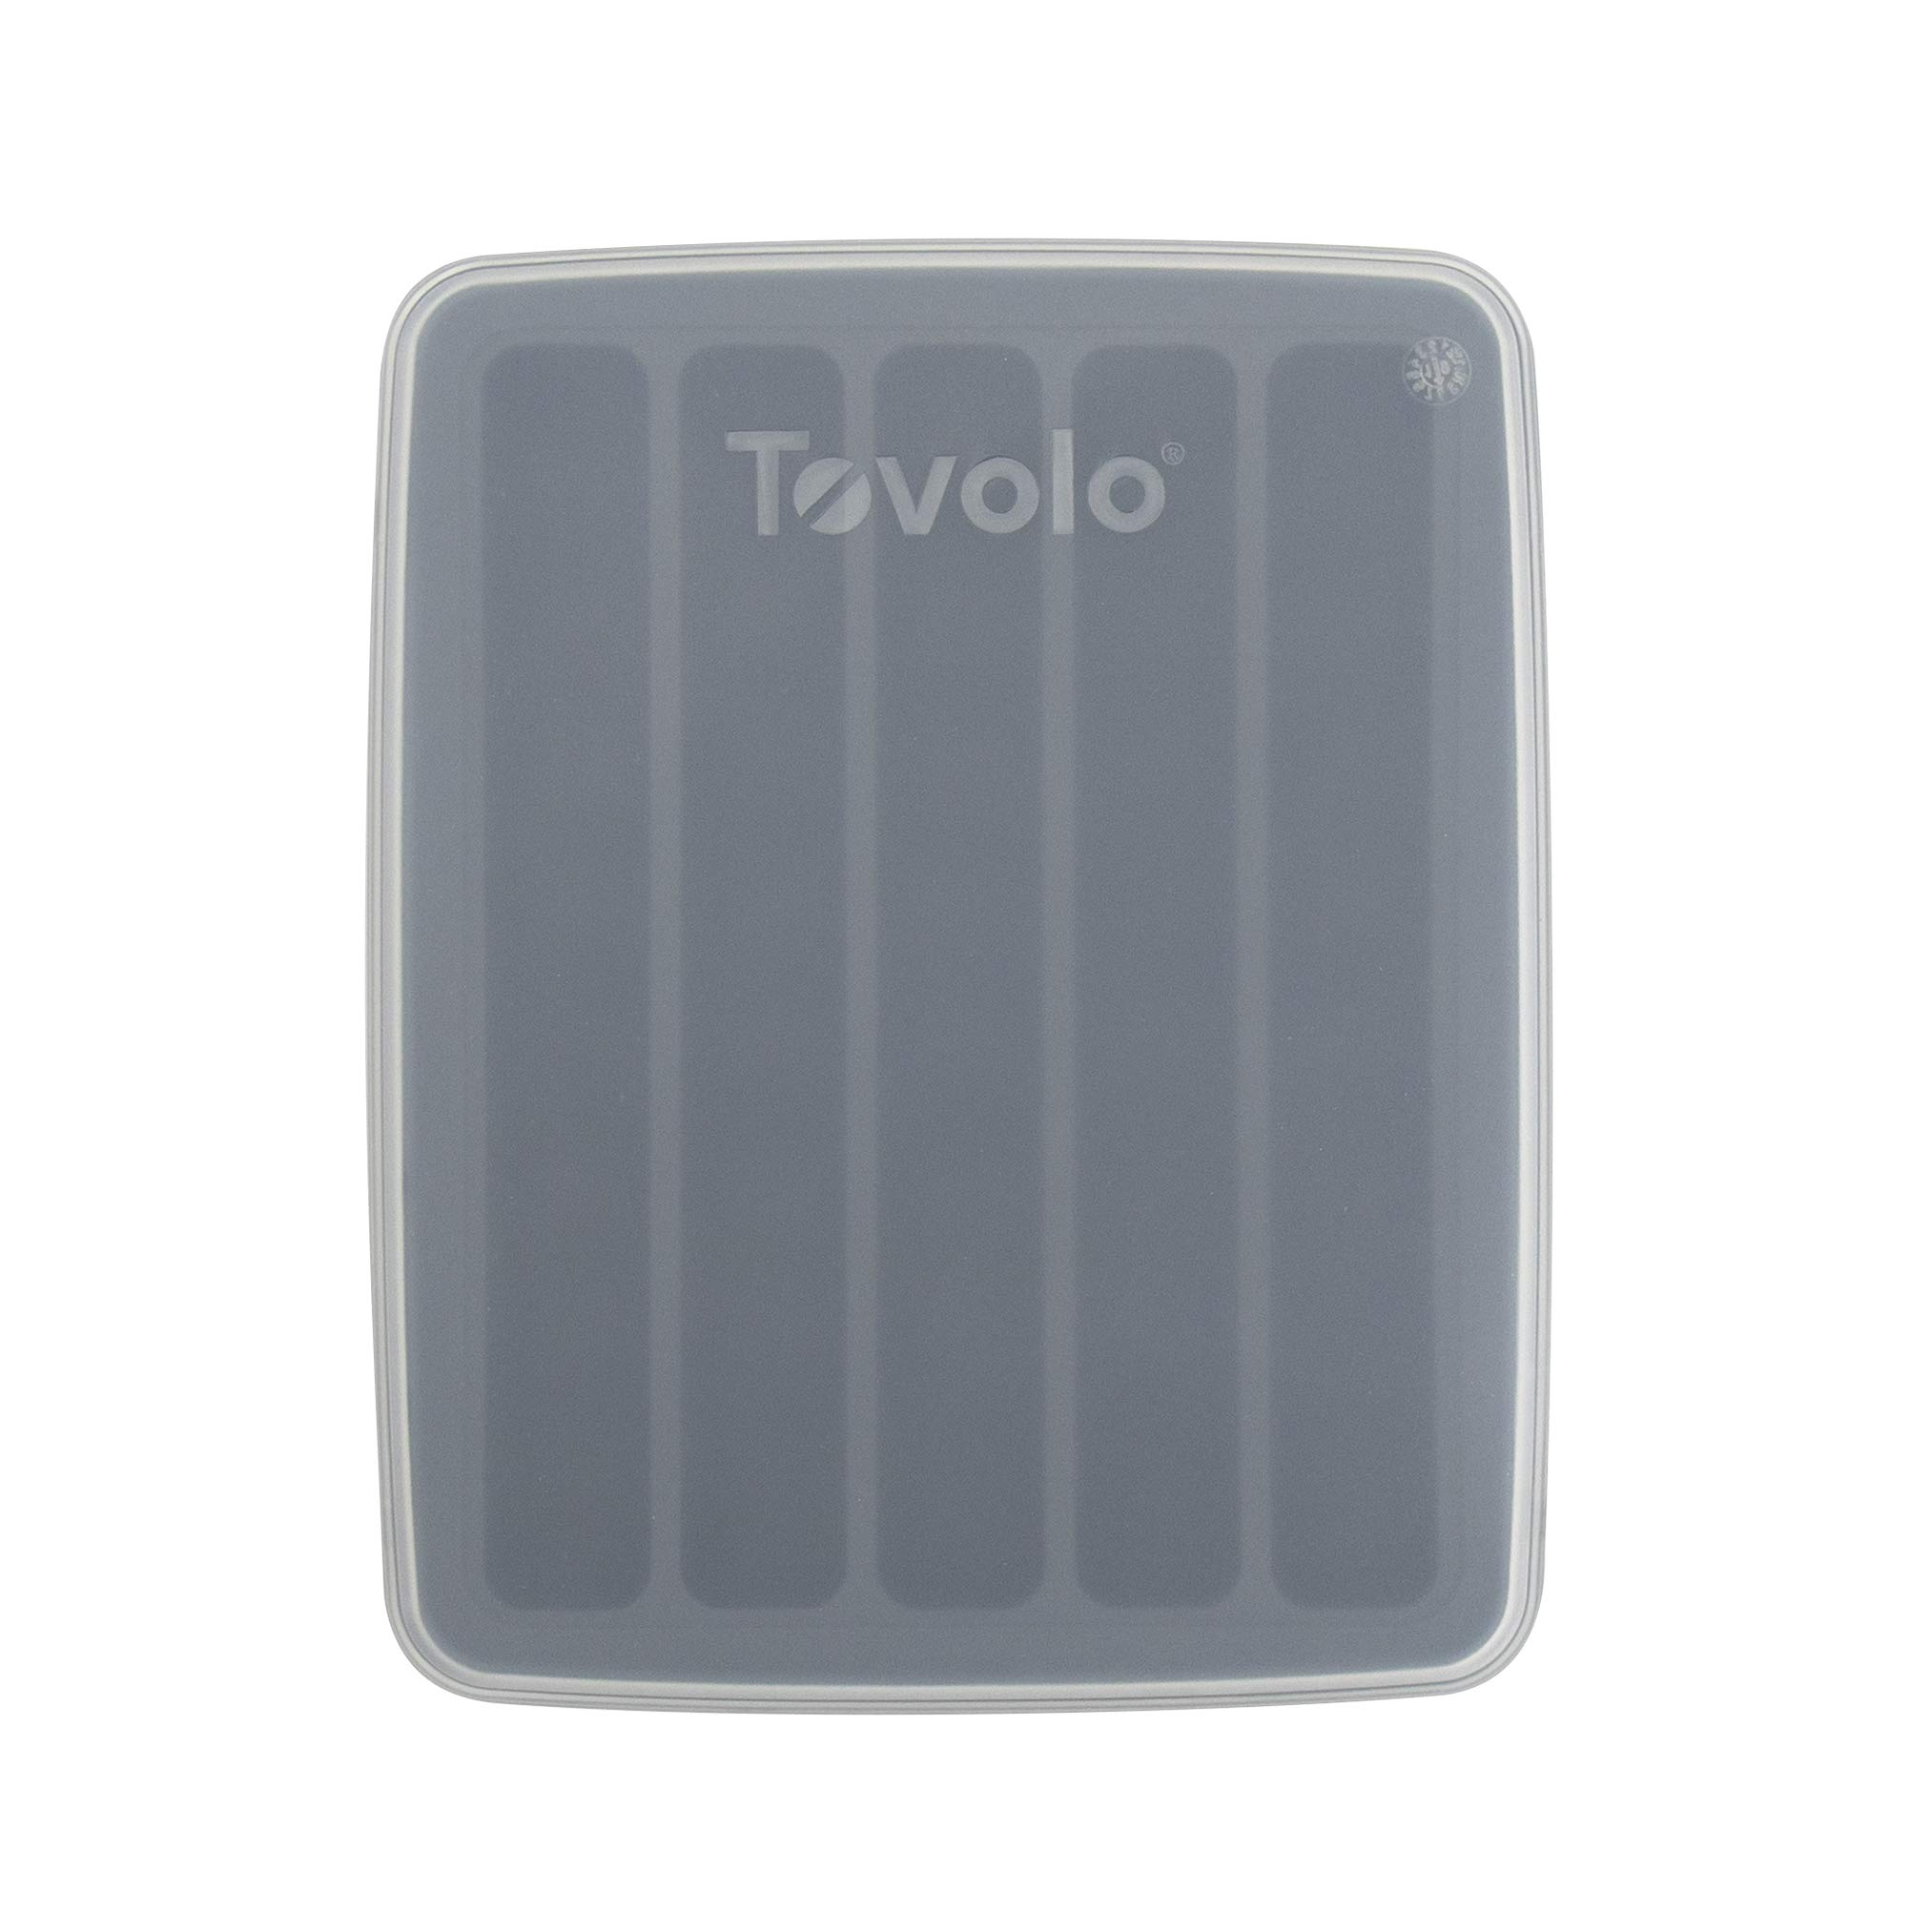 Tovolo Water Cube Silicone Narrow Ice Mold Freezer Tray Makes 5 Frozen Slim Rod Sticks for Sports, Bottled Soda & Beverages, Includes Lid Cover for Stacking, 1 EA, Frost/Charcoal